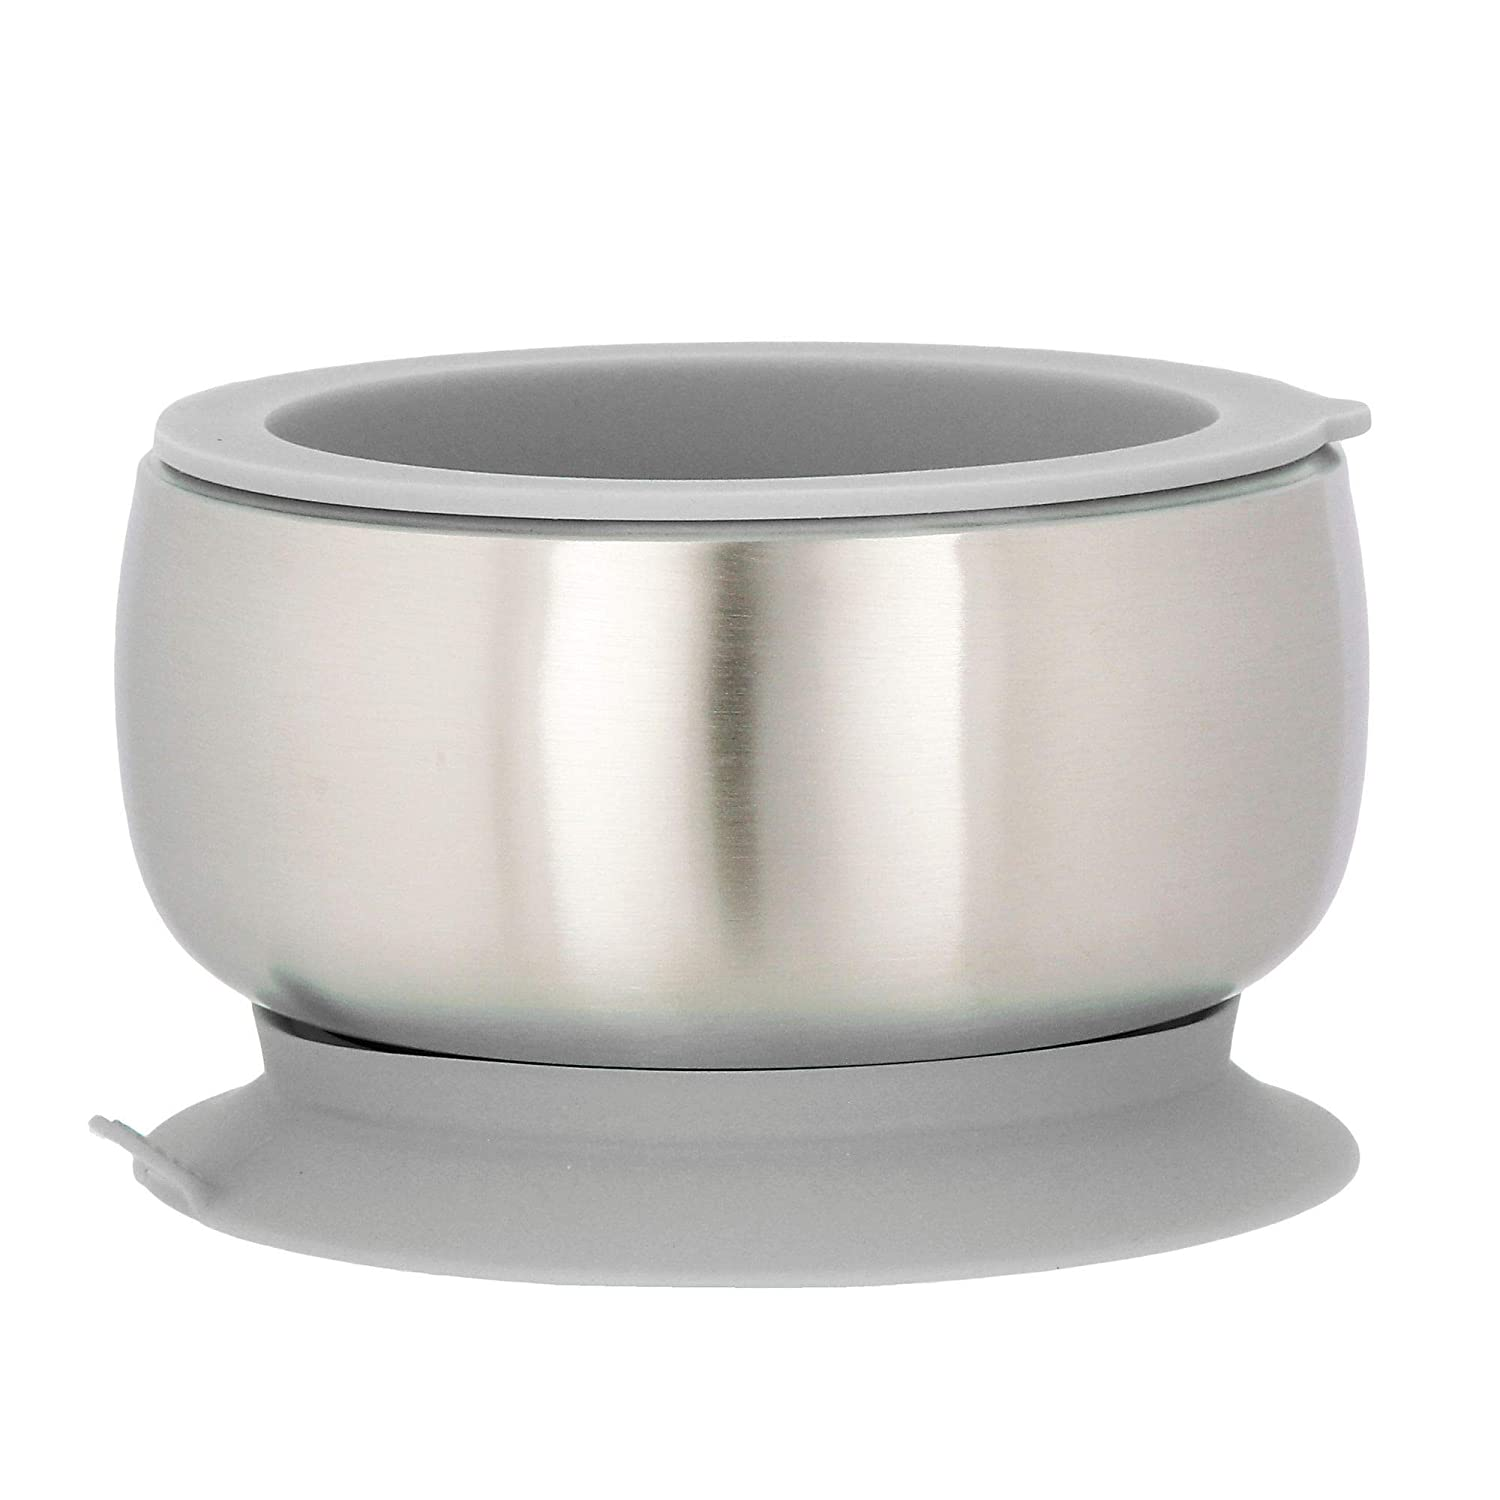 Avanchy Stainless Steel Suction Baby Bowl - Stainless Steel Kids Bowls - Suction Bowls with Lids - Suction Bowl BPA Free - Stay Put Bowl (Gray)